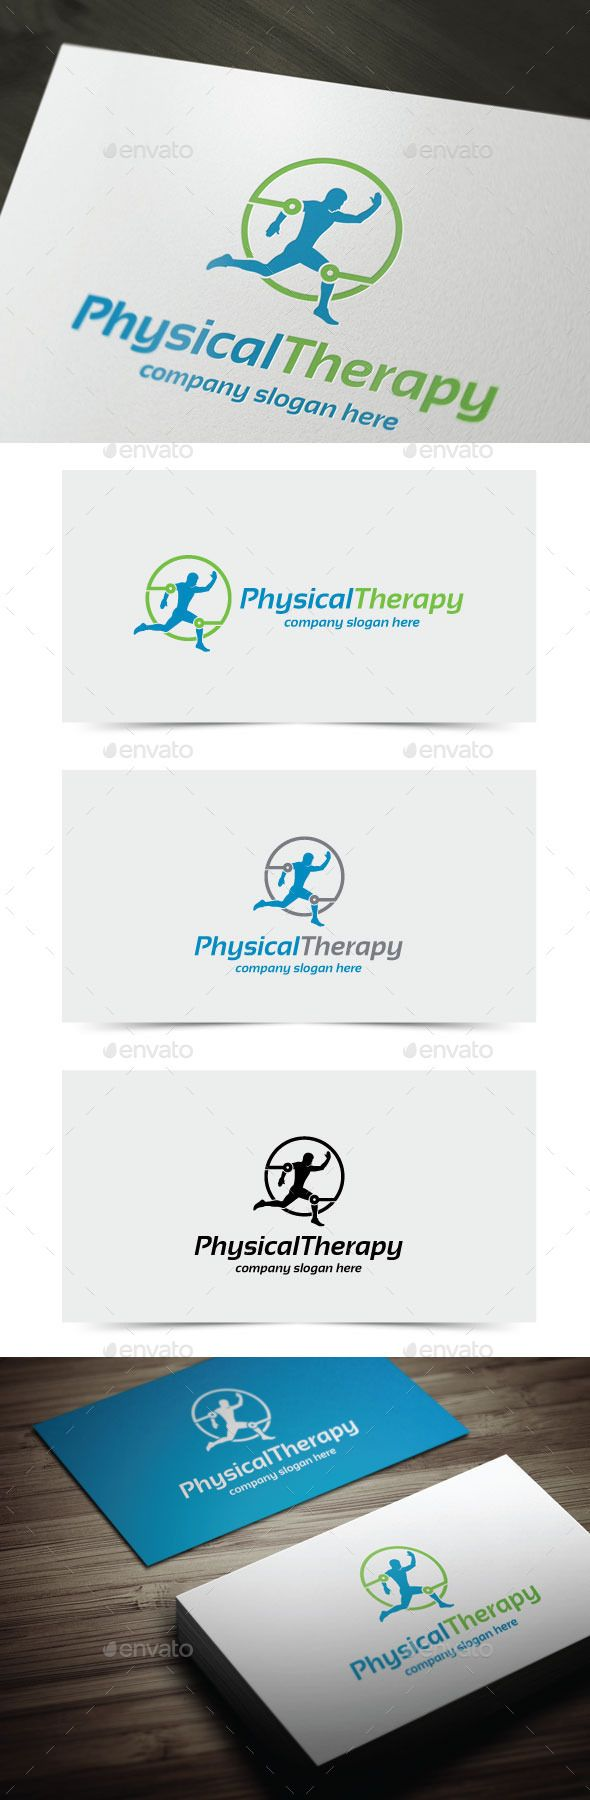 Physical Therapy Logo Template Vector EPS, AI. Download here: http://graphicriver.net/item/physical-therapy/11496749?ref=ksioks